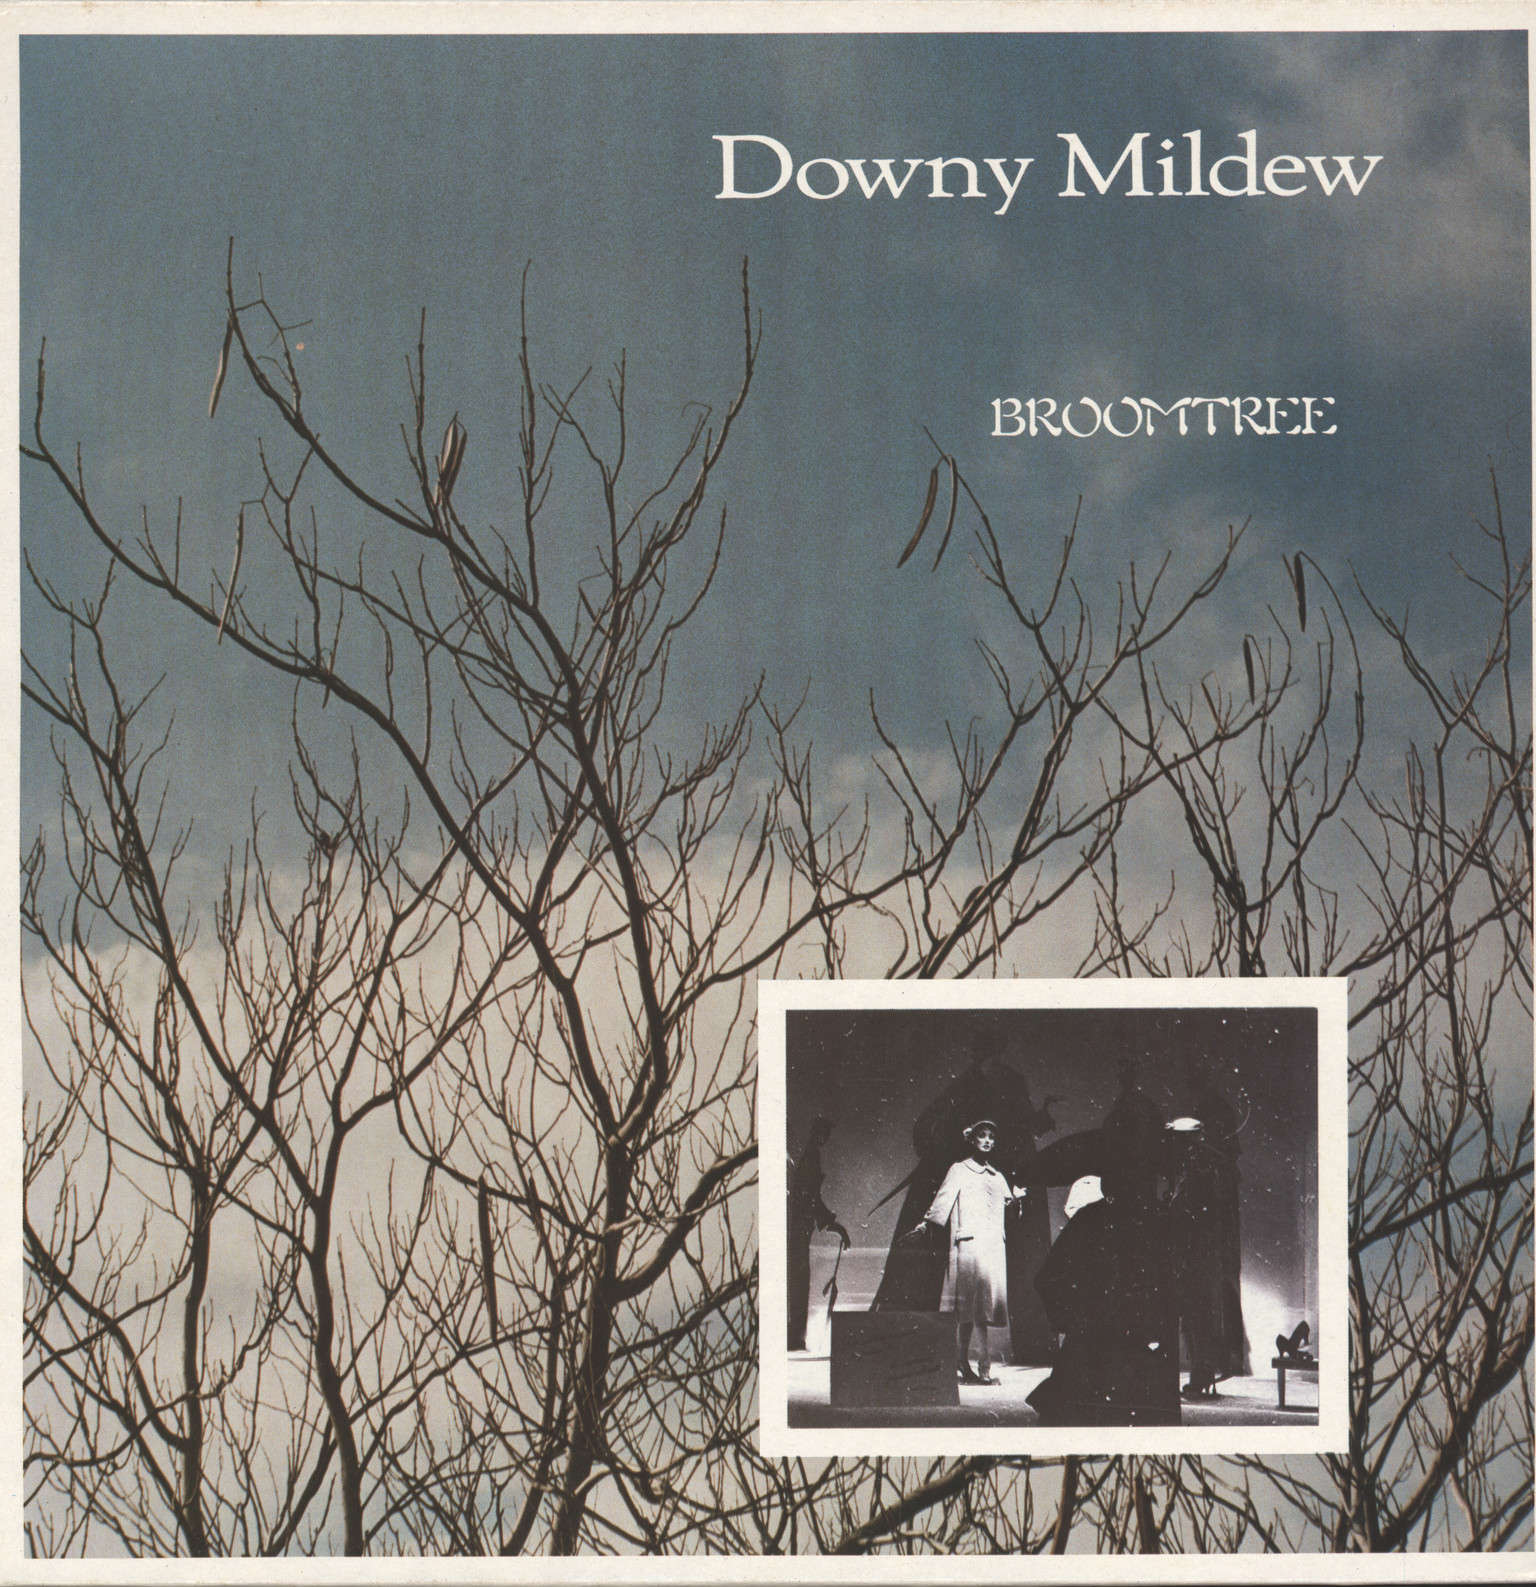 Downy Mildew: Broomtree, LP (Vinyl)